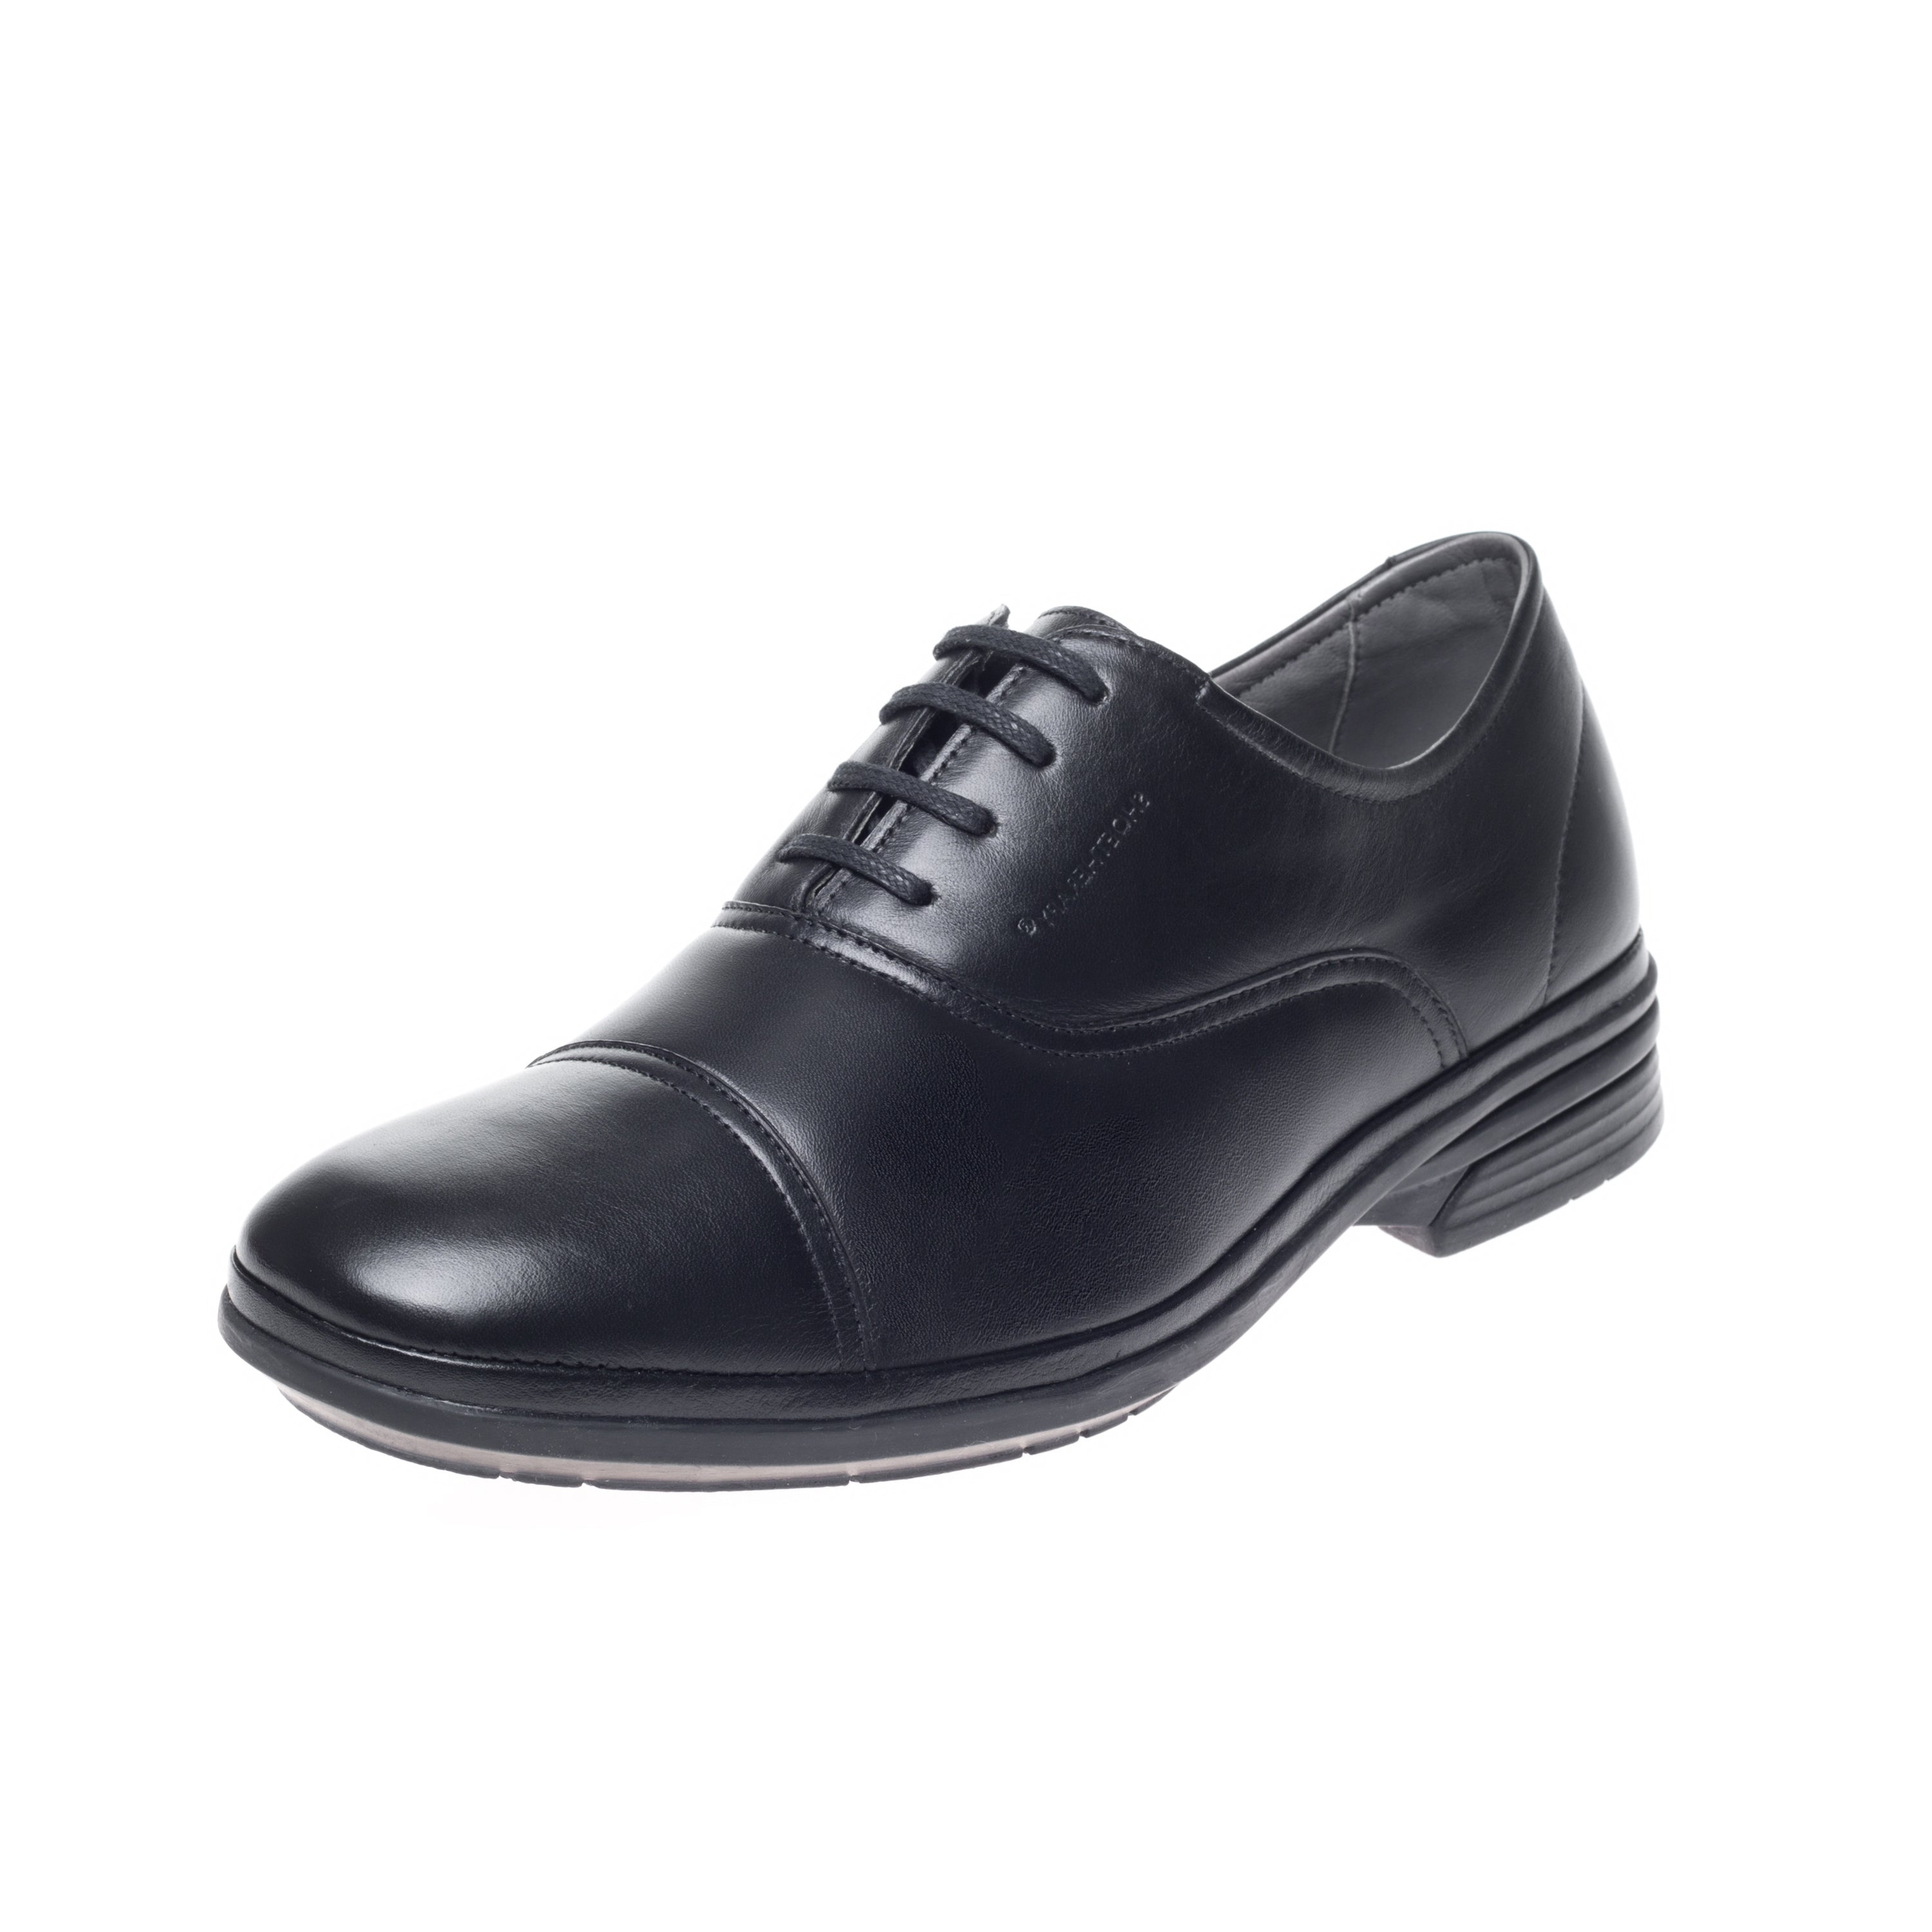 Shoetherapy Bubble Therapy 30717 Mens Black Leather Lace up shoe